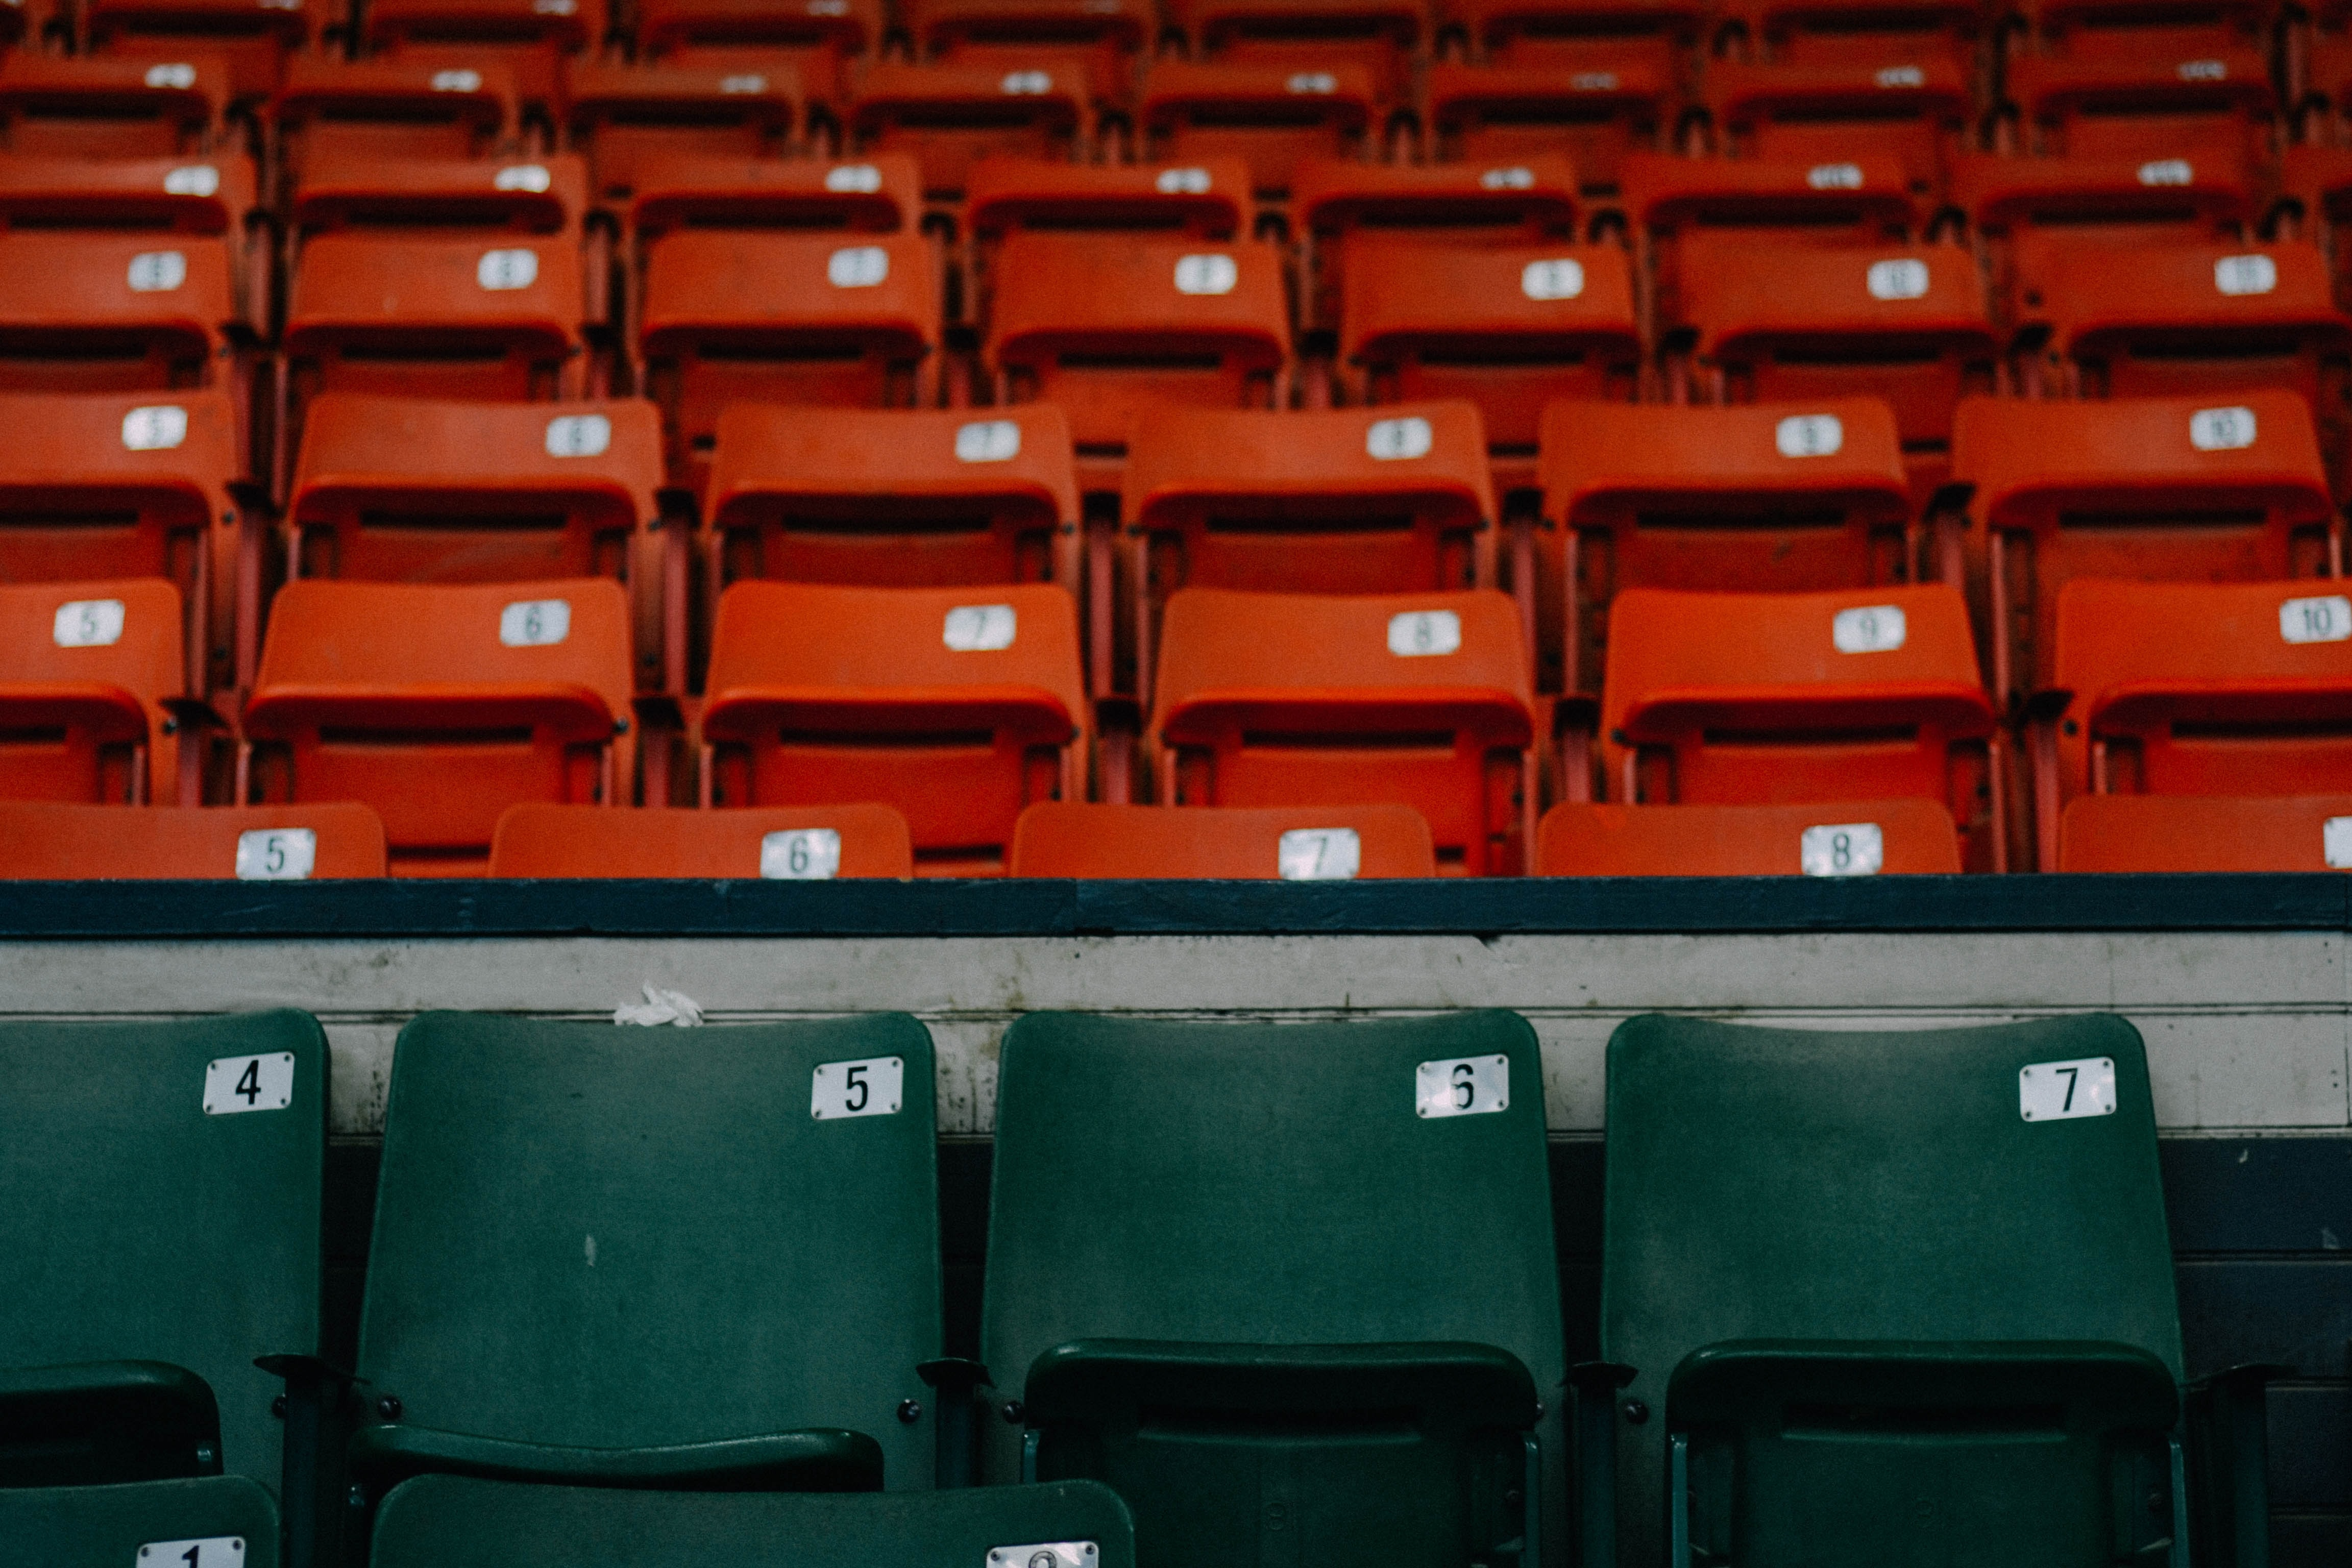 Several rows of numbered seats and a first row of green numbered seats on a Springfield baseball stadium bleacher